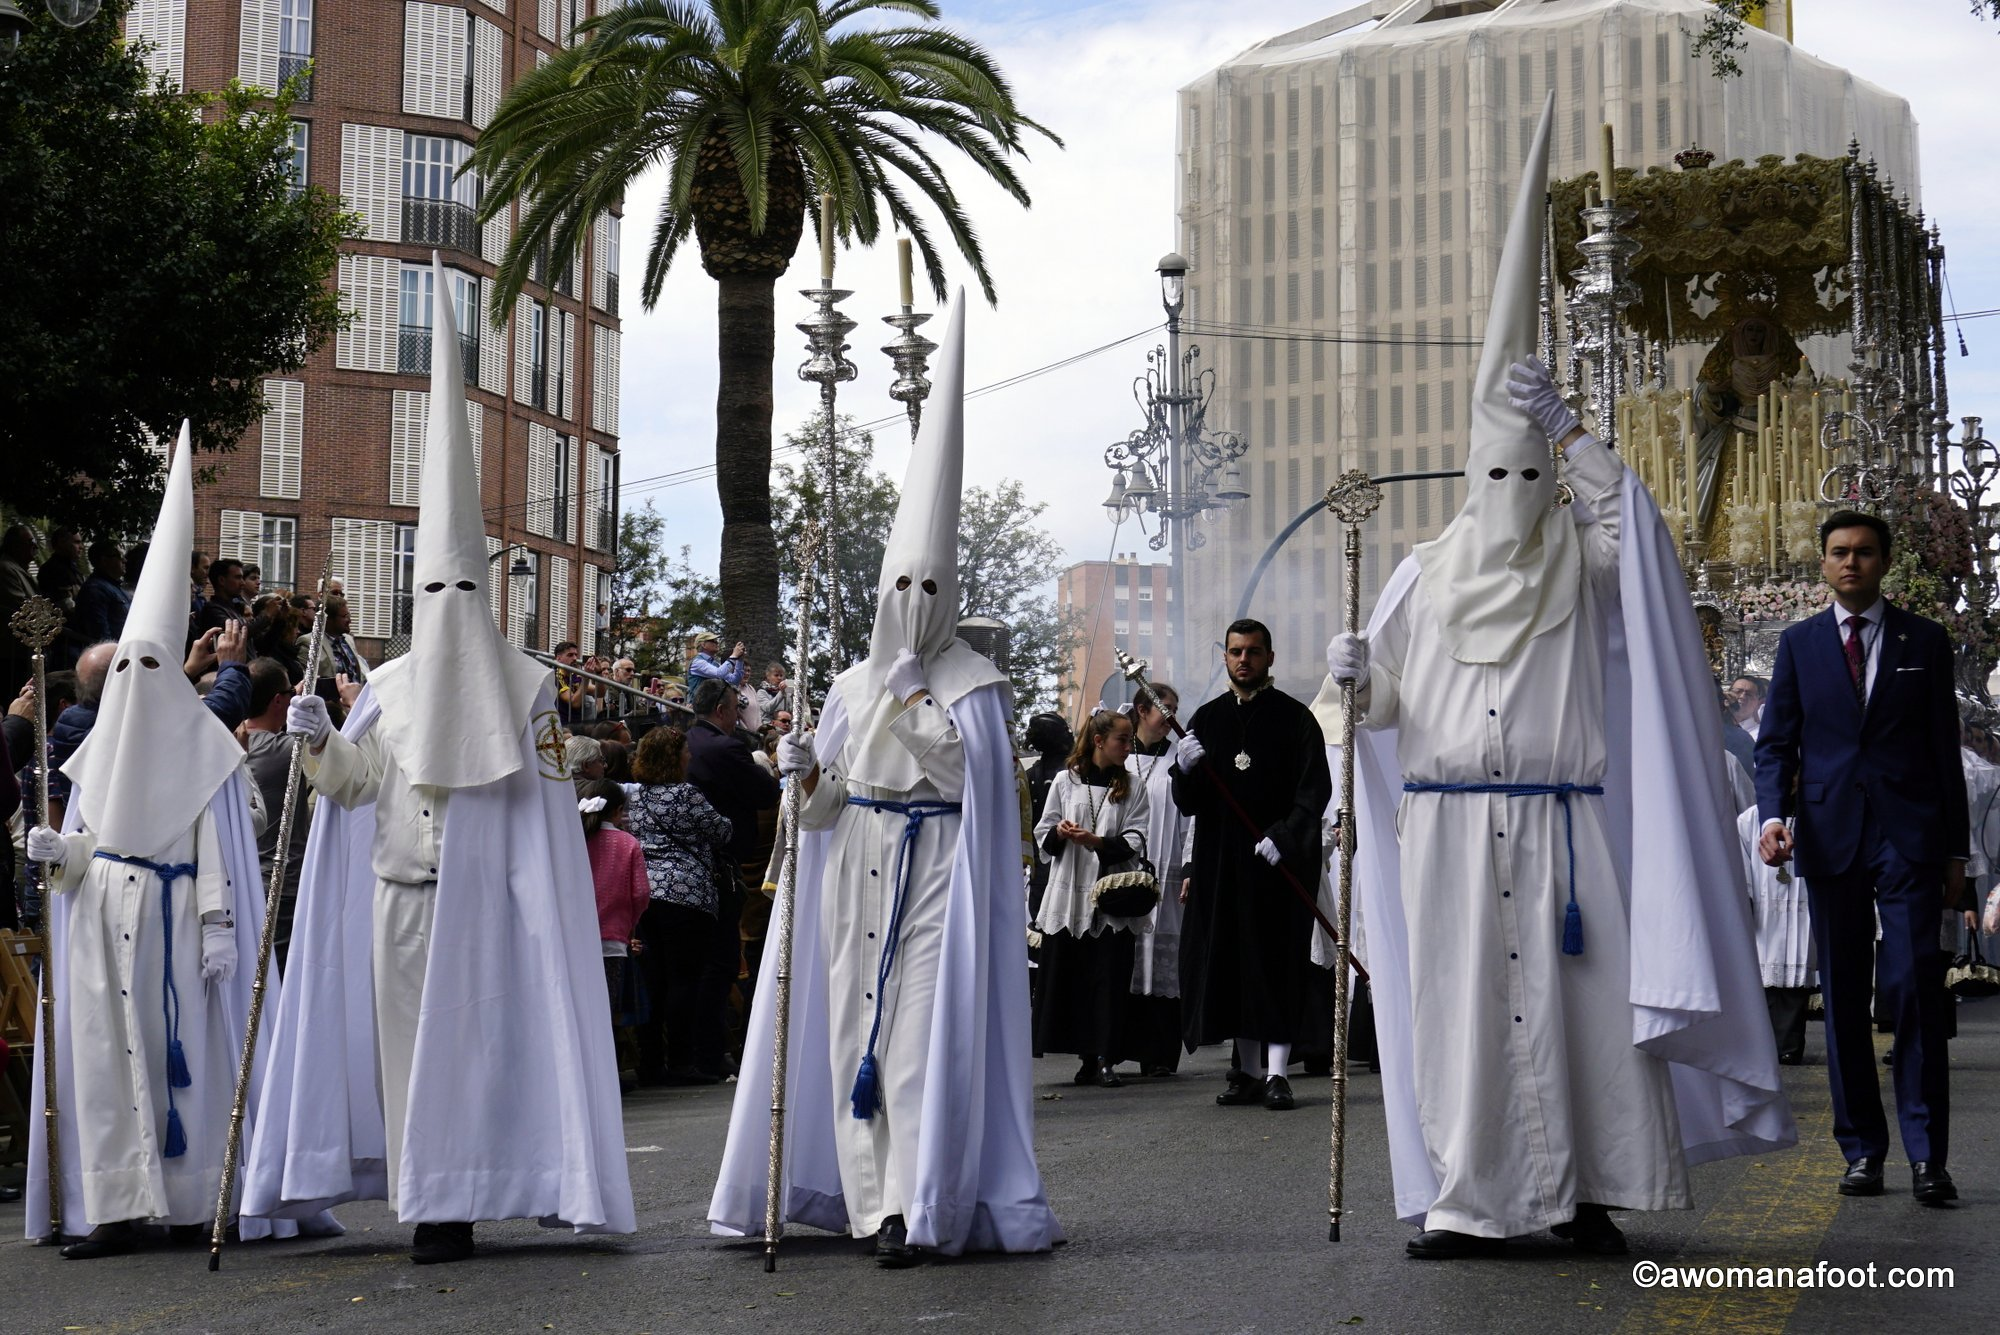 Easter is the perfect time to visit Spain - experience the uniquely Spanish traditions during the Semana Santa - Holy Week preceding the Catholic holiday of Easter. Awomanafoot.com | #Spain | #SemanaSanta | #Malaga | #Easter | #CultureTravel | #EuropeanTravel | What to do in Spain | Best time to go to Spain | Easter Celebrations | Easter in Malaga | Malaga travel | Holiday Traditions | Catholic Traditions | #CityGuide | #TravelDestinations